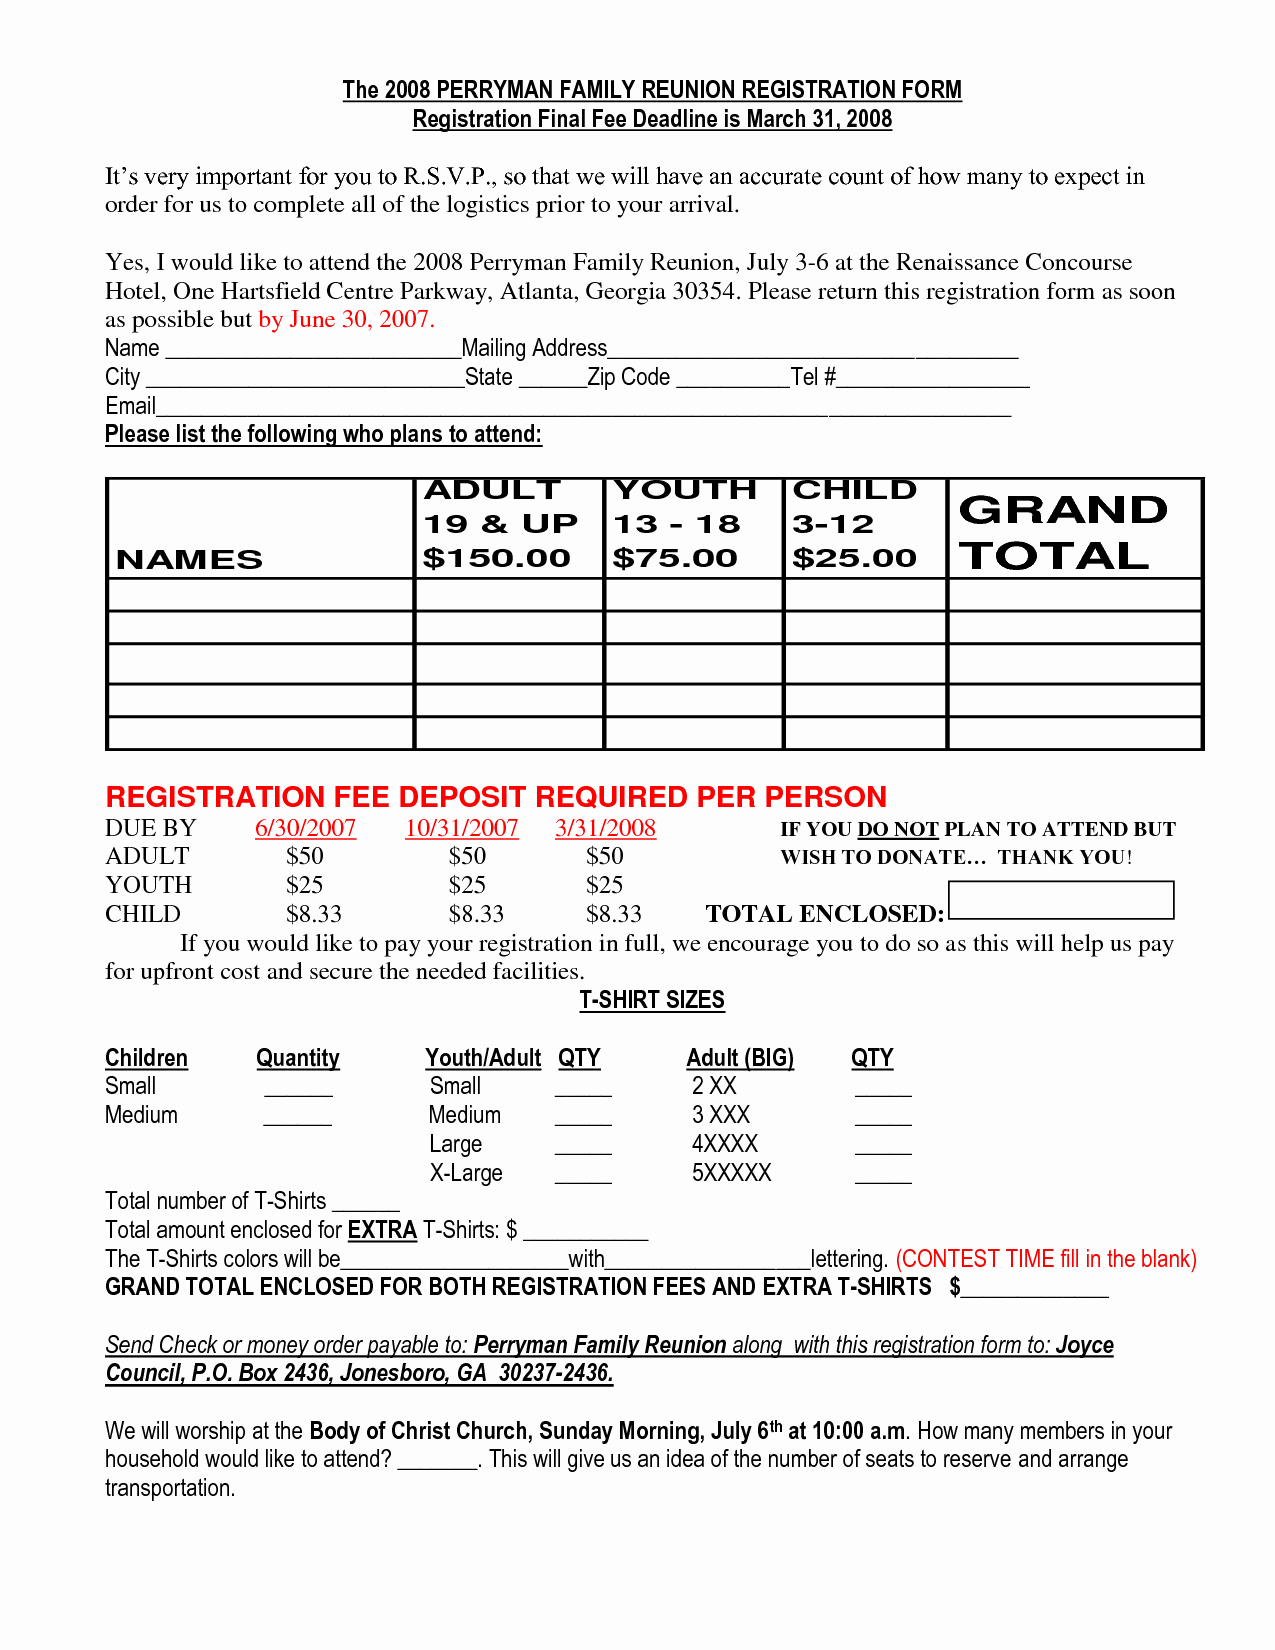 Class Reunion Registration form Template Elegant Family Reunion Registration Packet